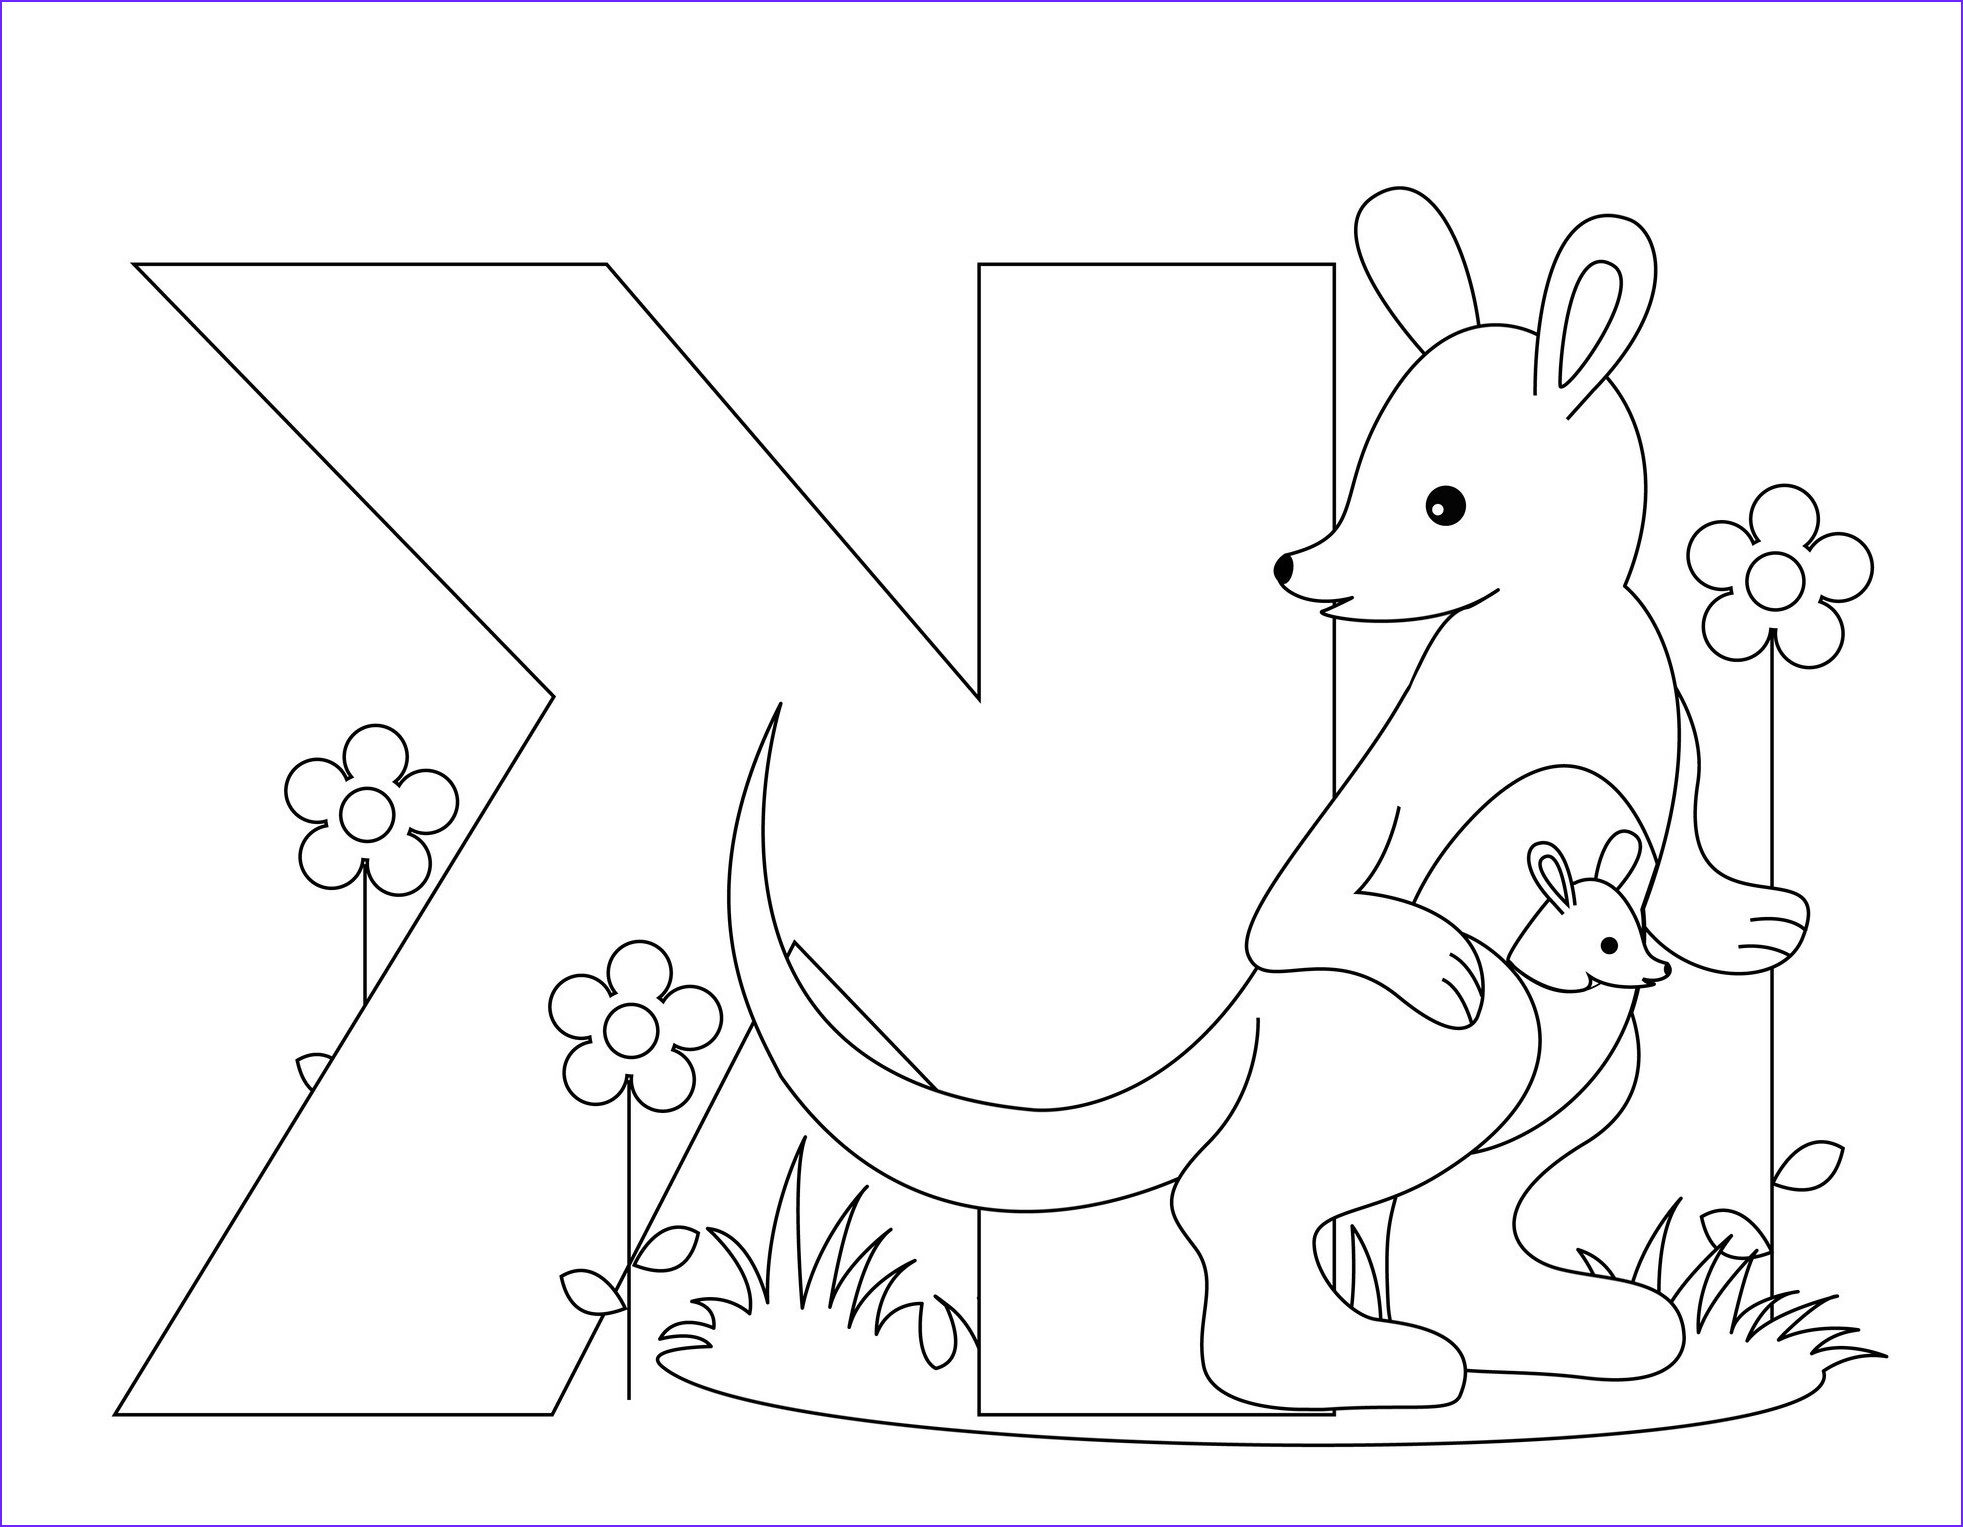 Alphabet Coloring Pages Preschool Awesome Gallery Free Printable Alphabet Coloring Pages for Kids Best